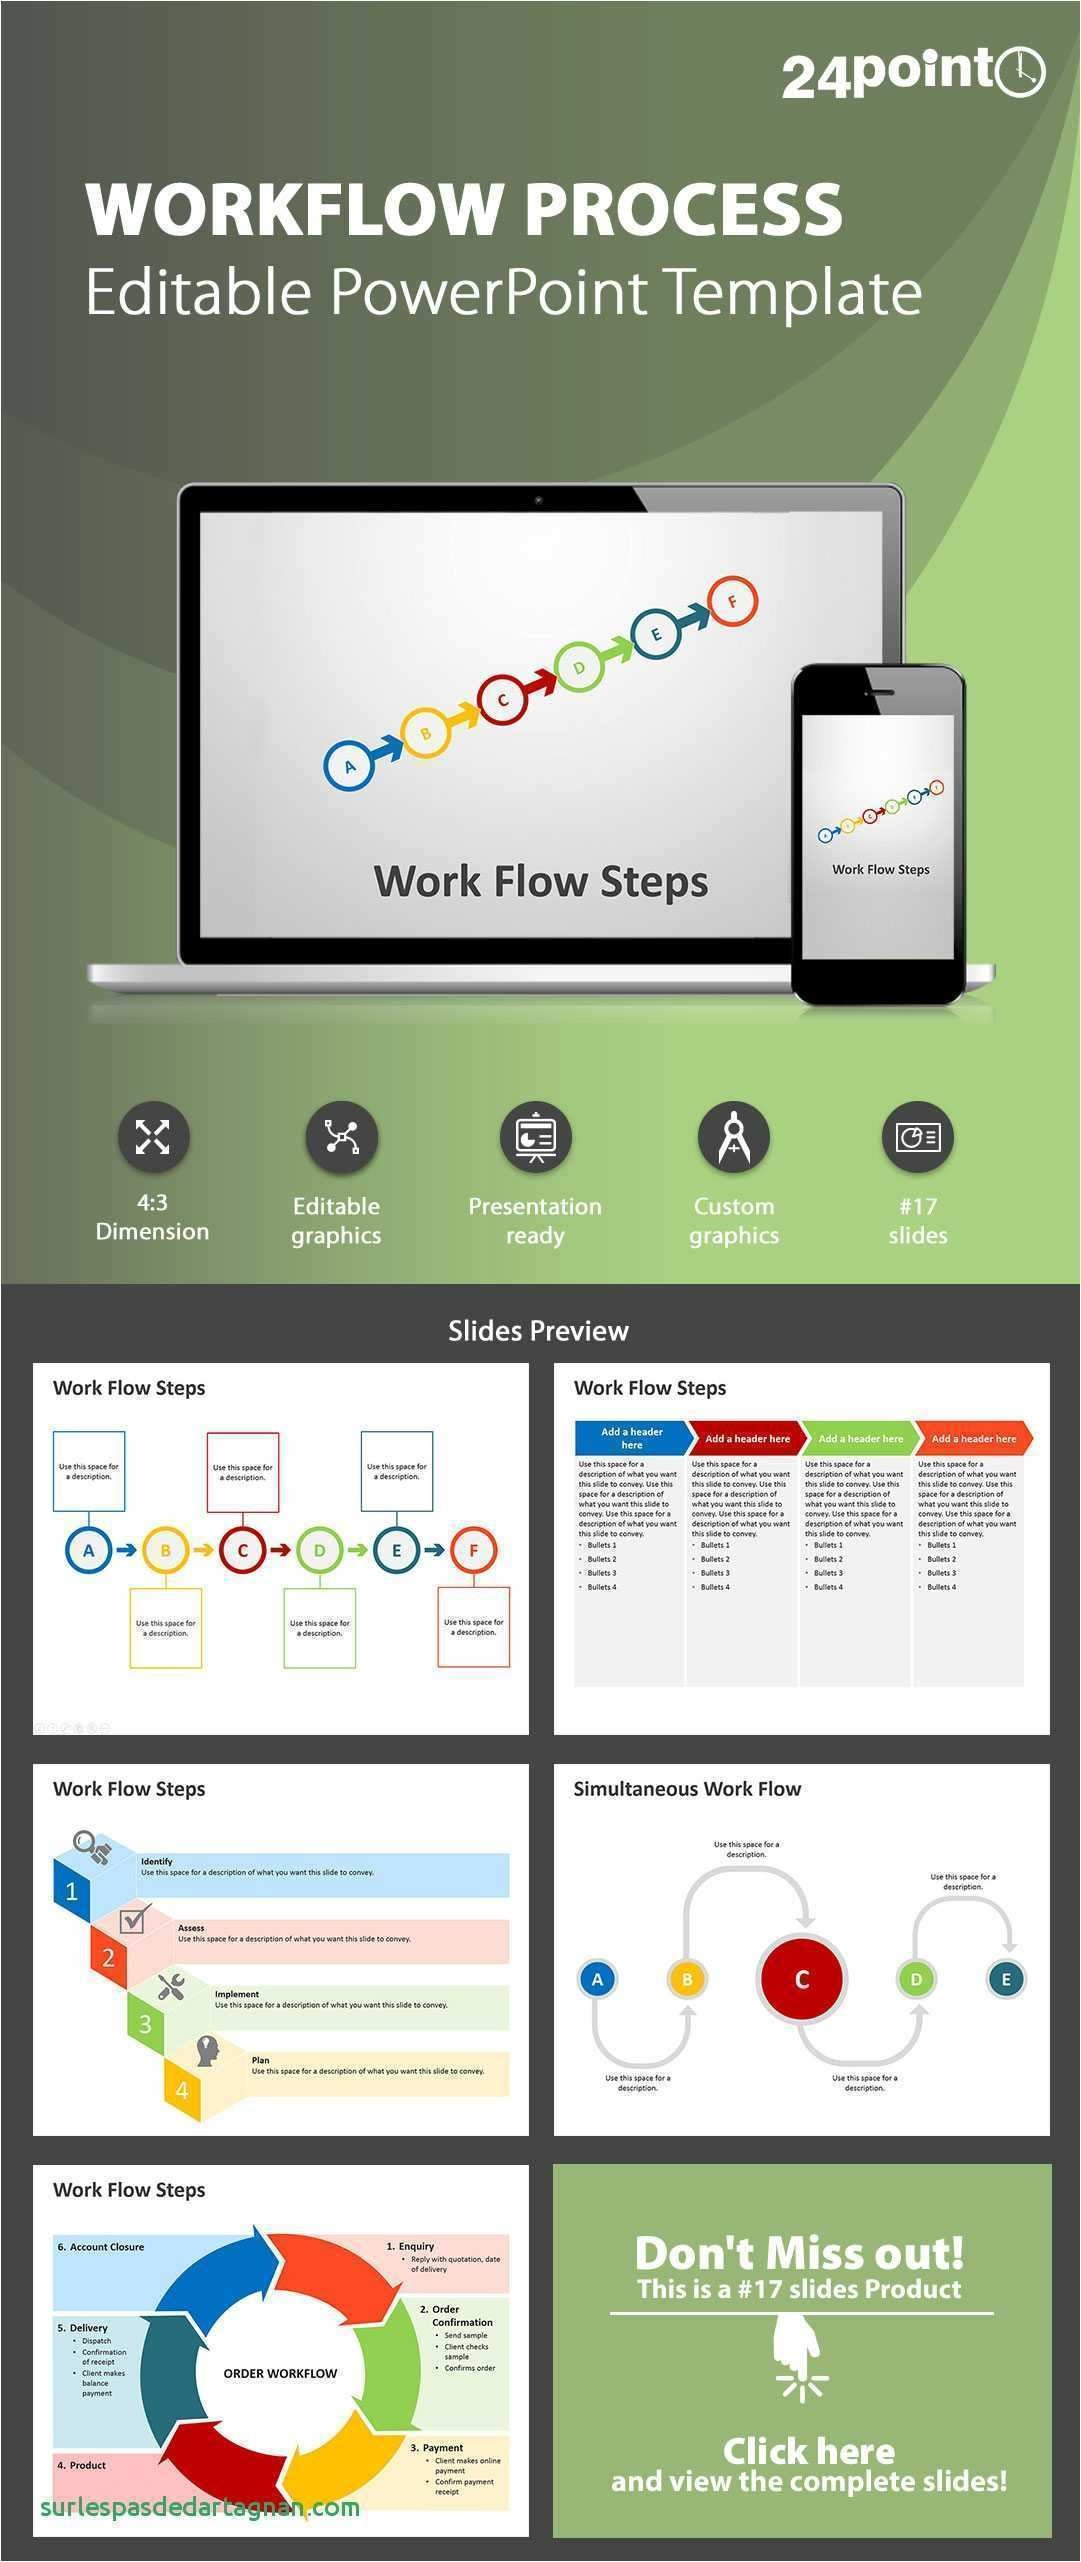 Process Flow Diagram Chemical Engineering 51 New Science Powerpoint Template Of Process Flow Diagram Chemical Engineering